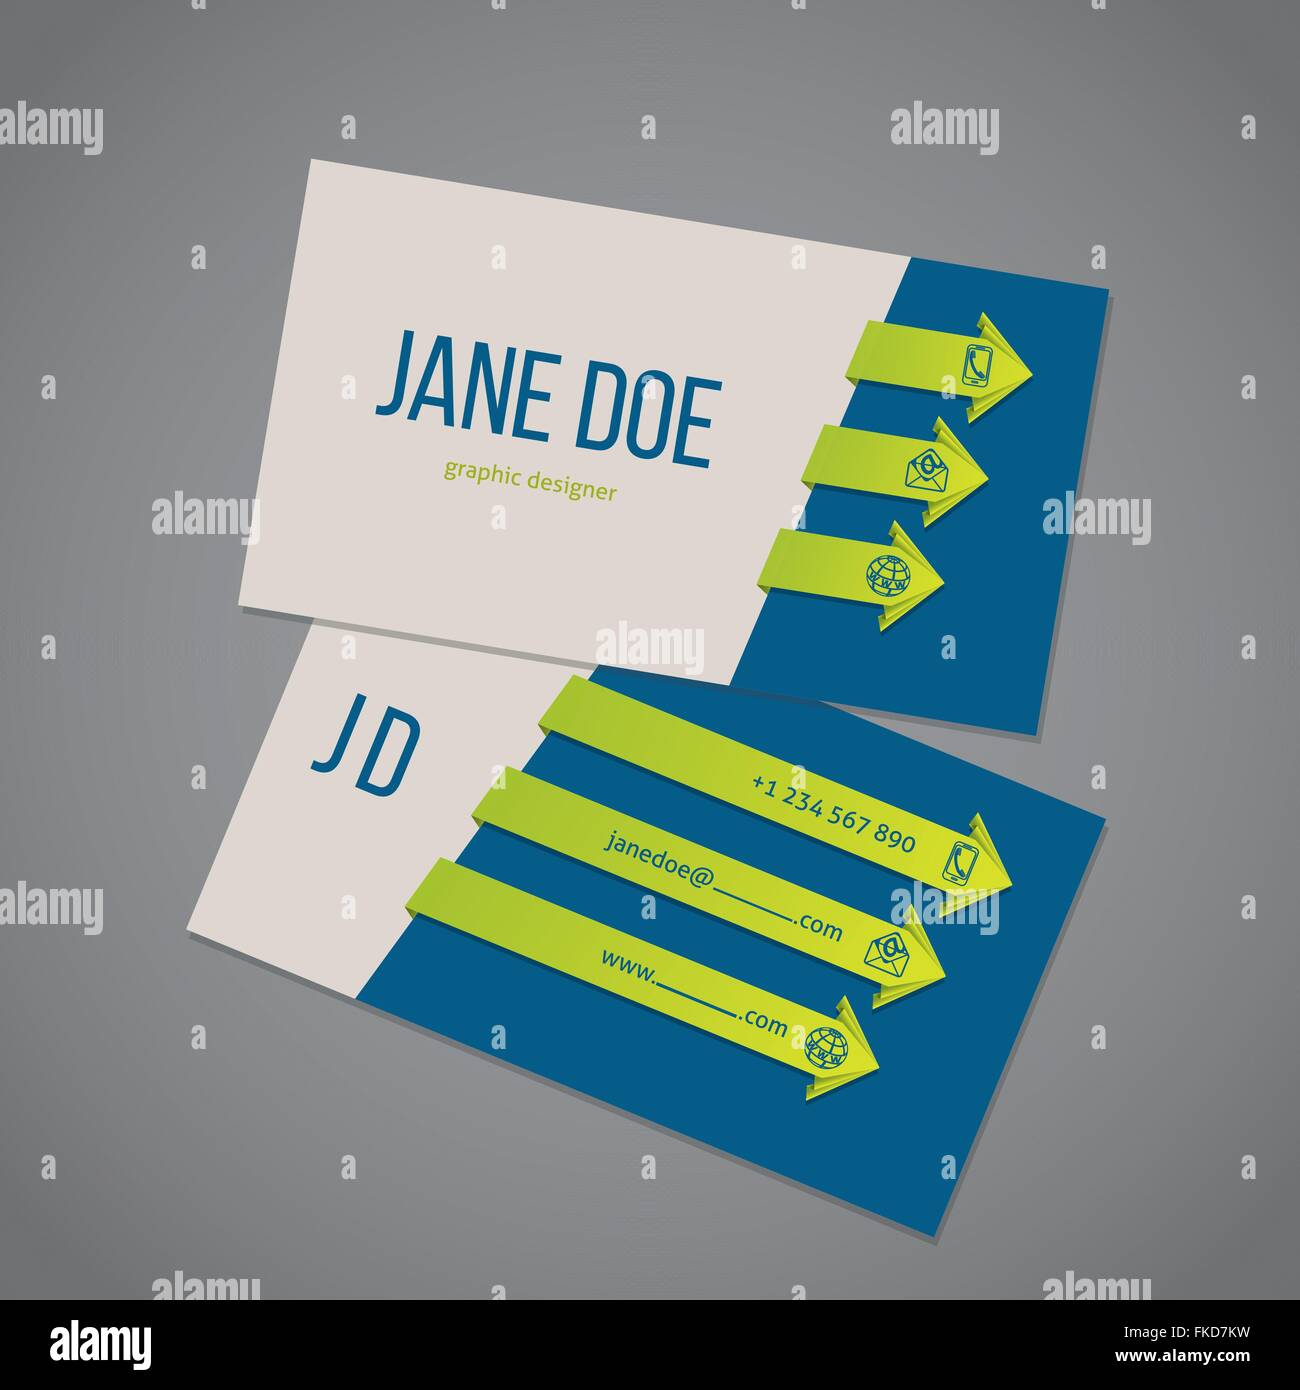 Business card template design with cool arrow ribbons Stock Vector ...